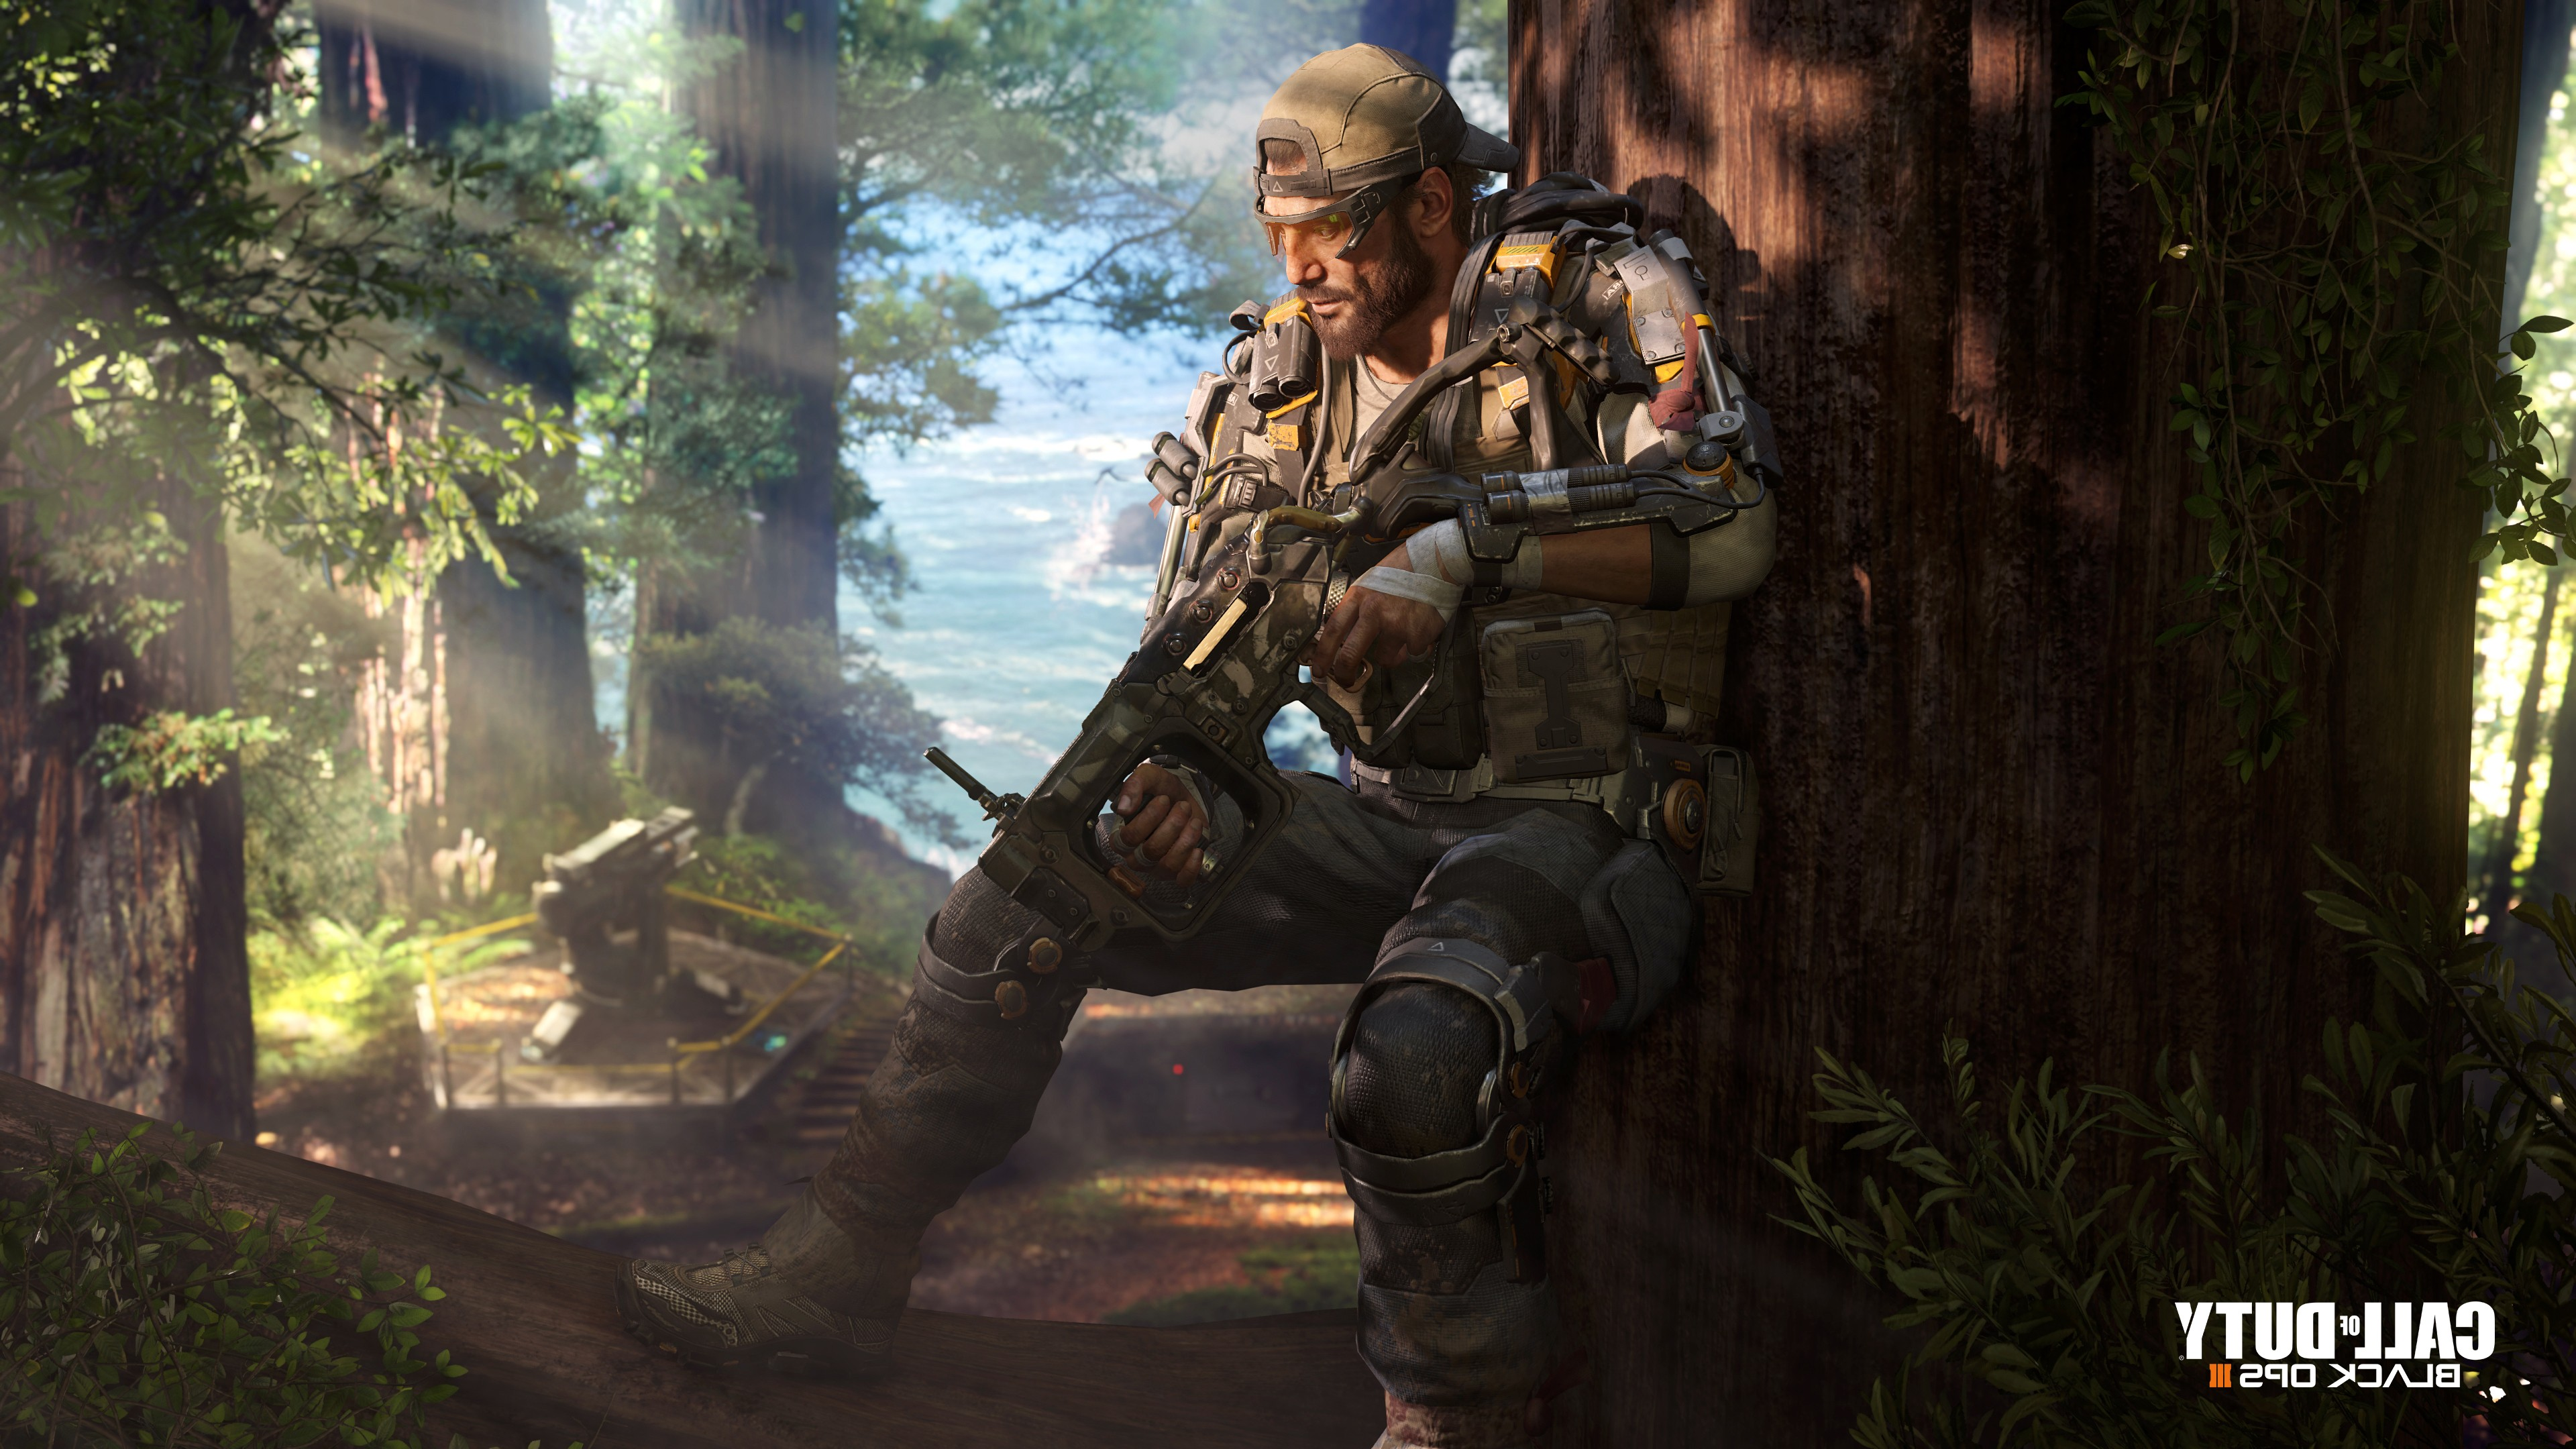 Cod Bo3 Wallpaper Posted By Ryan Anderson